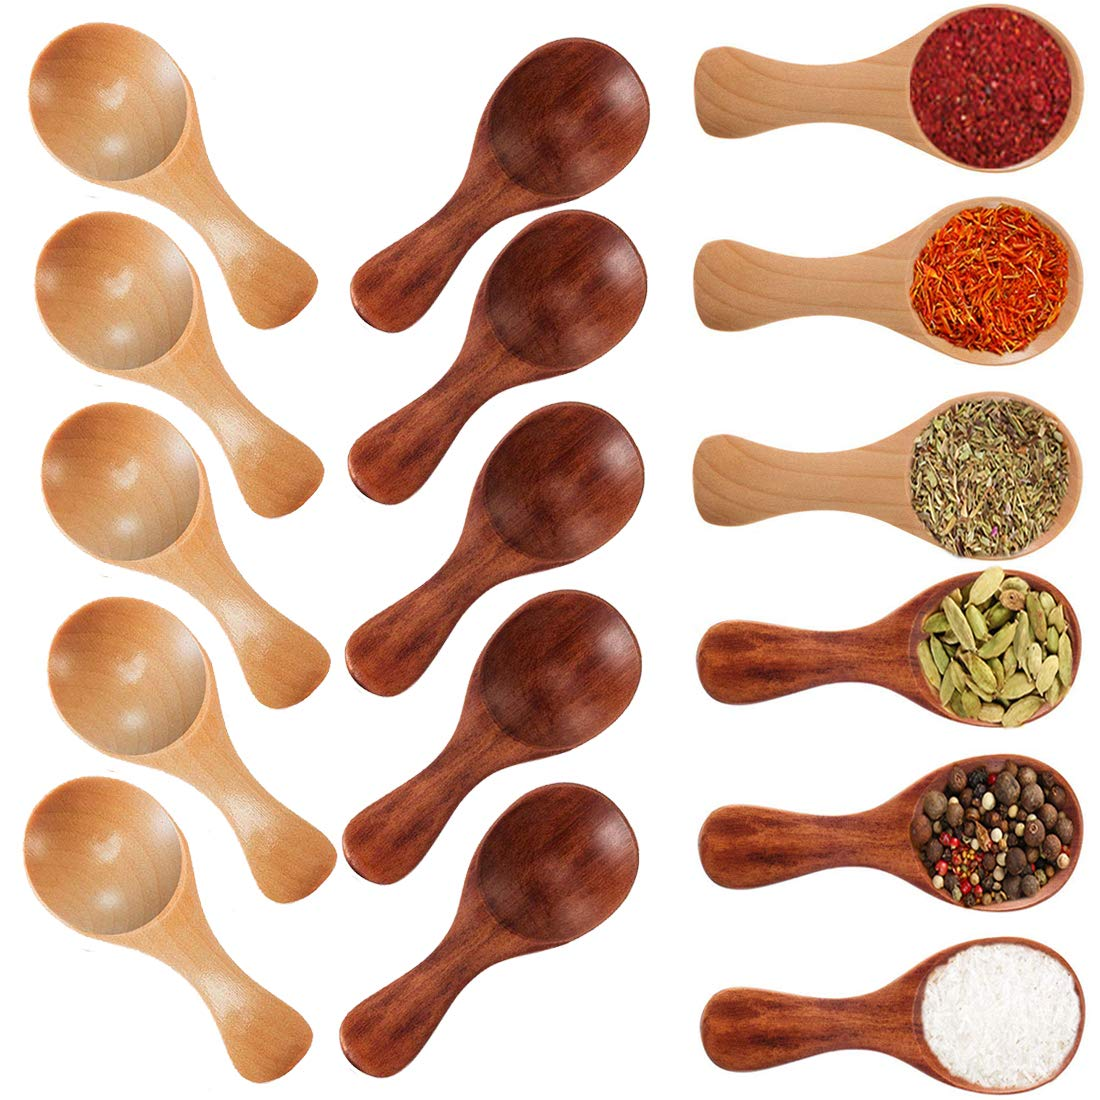 Small Wooden Salt Spoon - 20 Pack Mini Wood Spoon with Short Handle, Perfect for Small Jars of Jam, Spices, Condiments, Seasoning, Sugar, Honey, Coffee, Tea, Mustard, Ice Cream, Milk Powder by Buytra